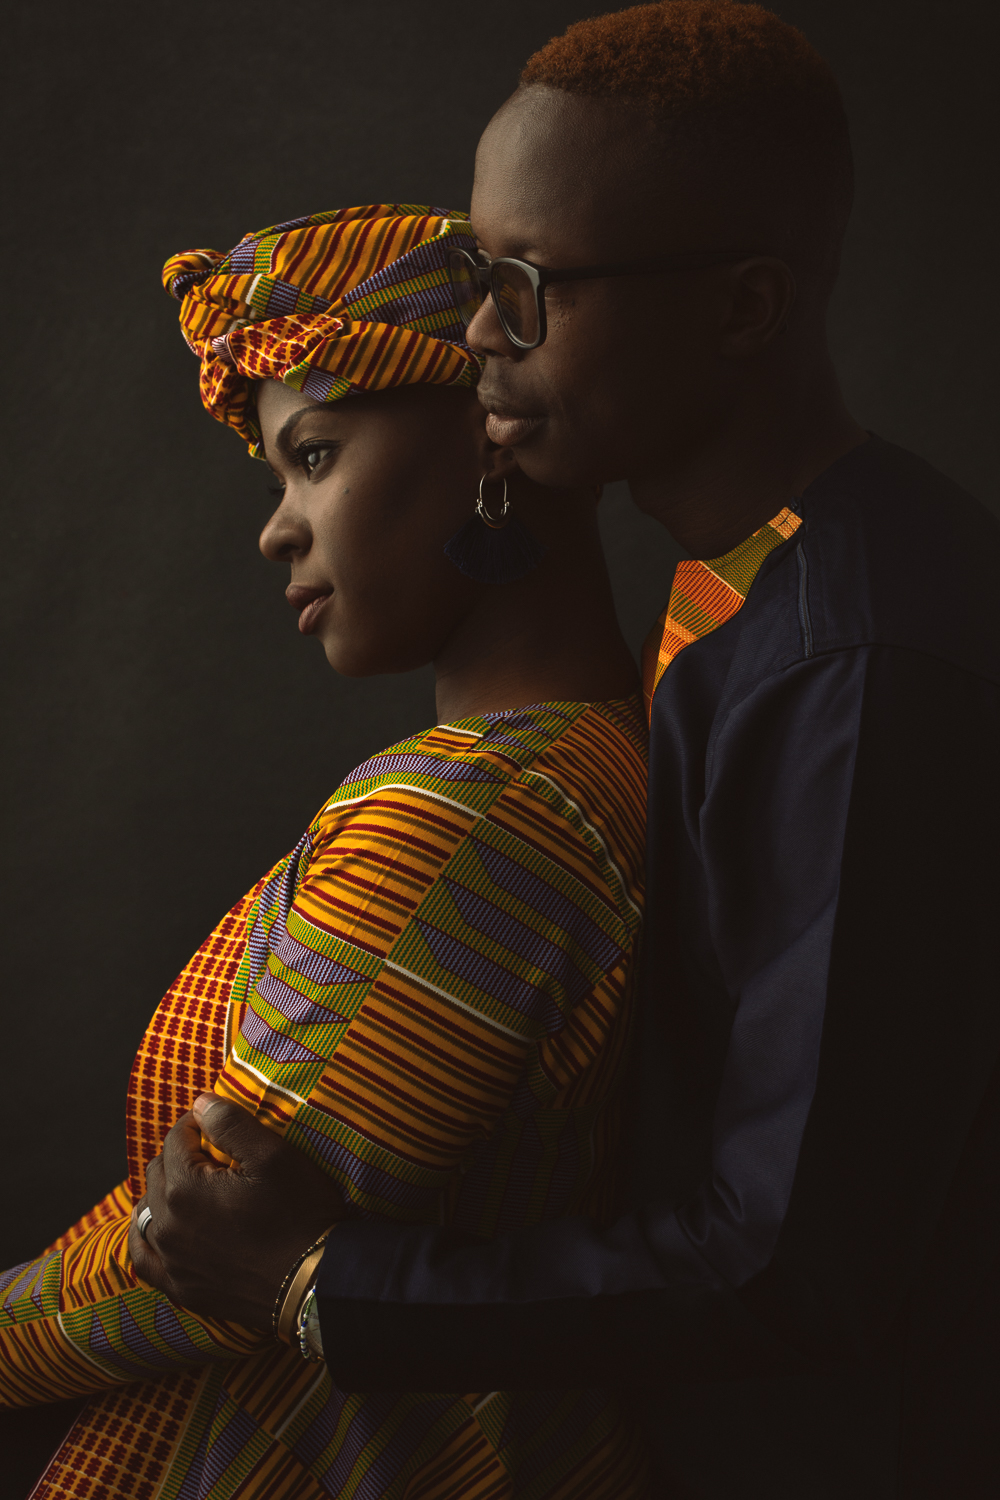 Dramatic portrait of a black couple wearing traditional African clothing